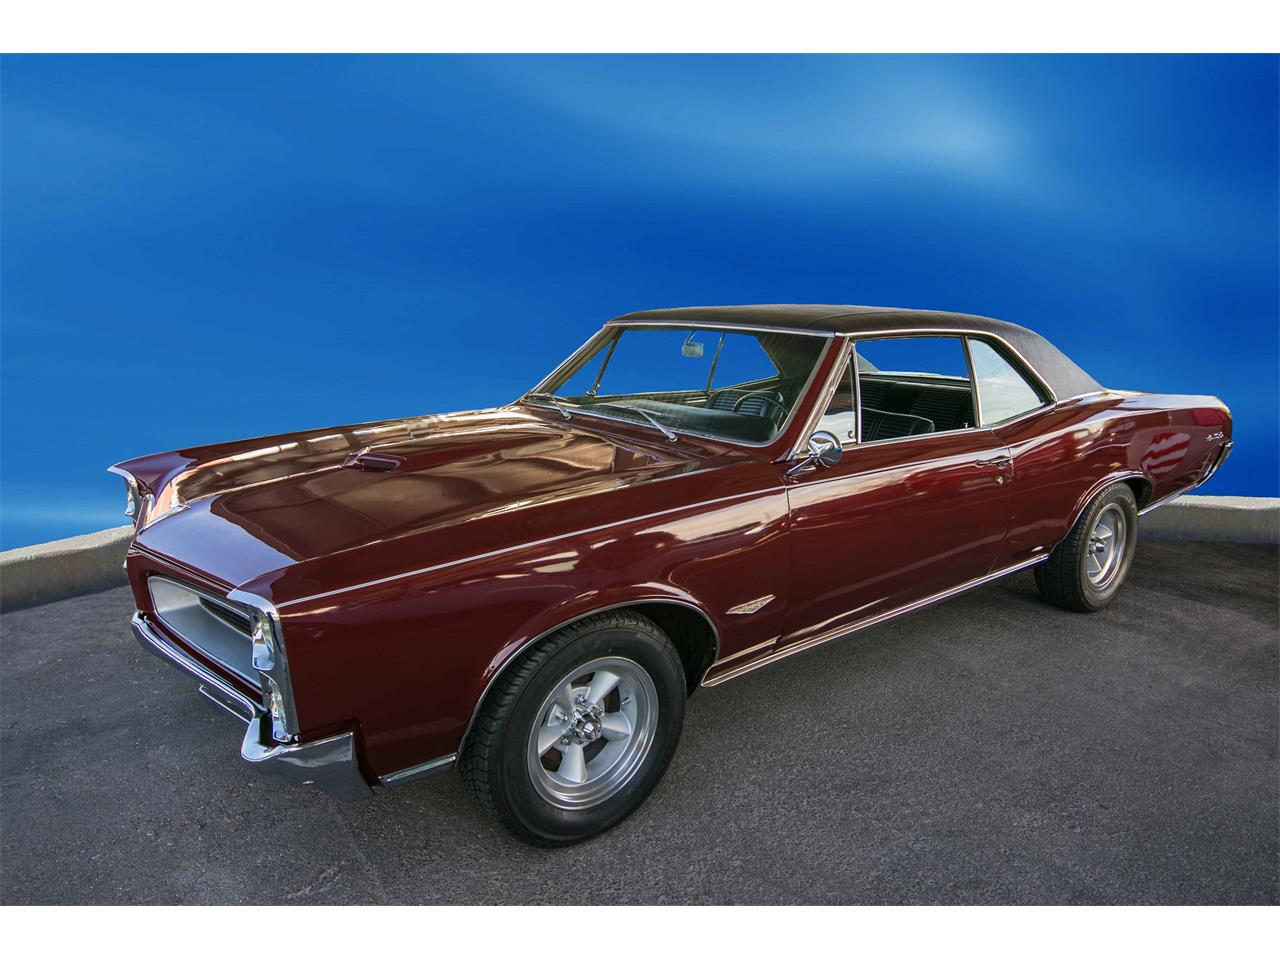 Large Picture of Classic 1966 GTO located in Nevada - $40,000.00 Offered by a Private Seller - R1SH